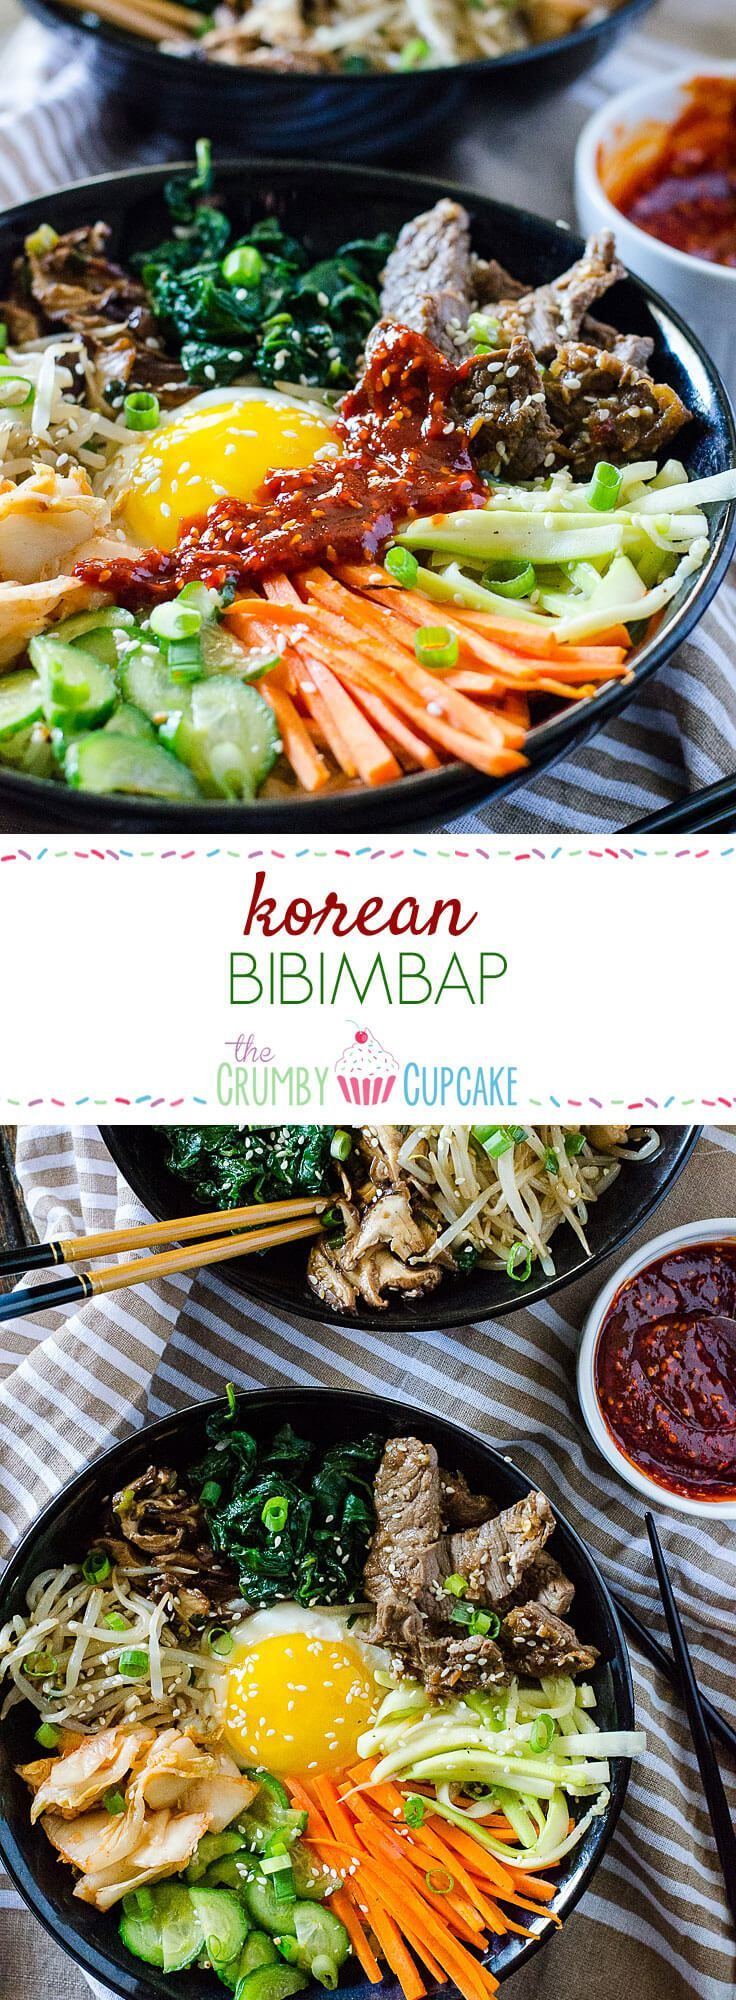 Step away from the buffet and try something different! Korean Bibimbap is an Asian food lover's dream – a bowl full of crispy rice, lots of sautéed veggies, a fried egg, and some thinly sliced @flbeefcouncil beef, all drizzled with a spicy sauce. #SundaySupper #FLBeefImmersion